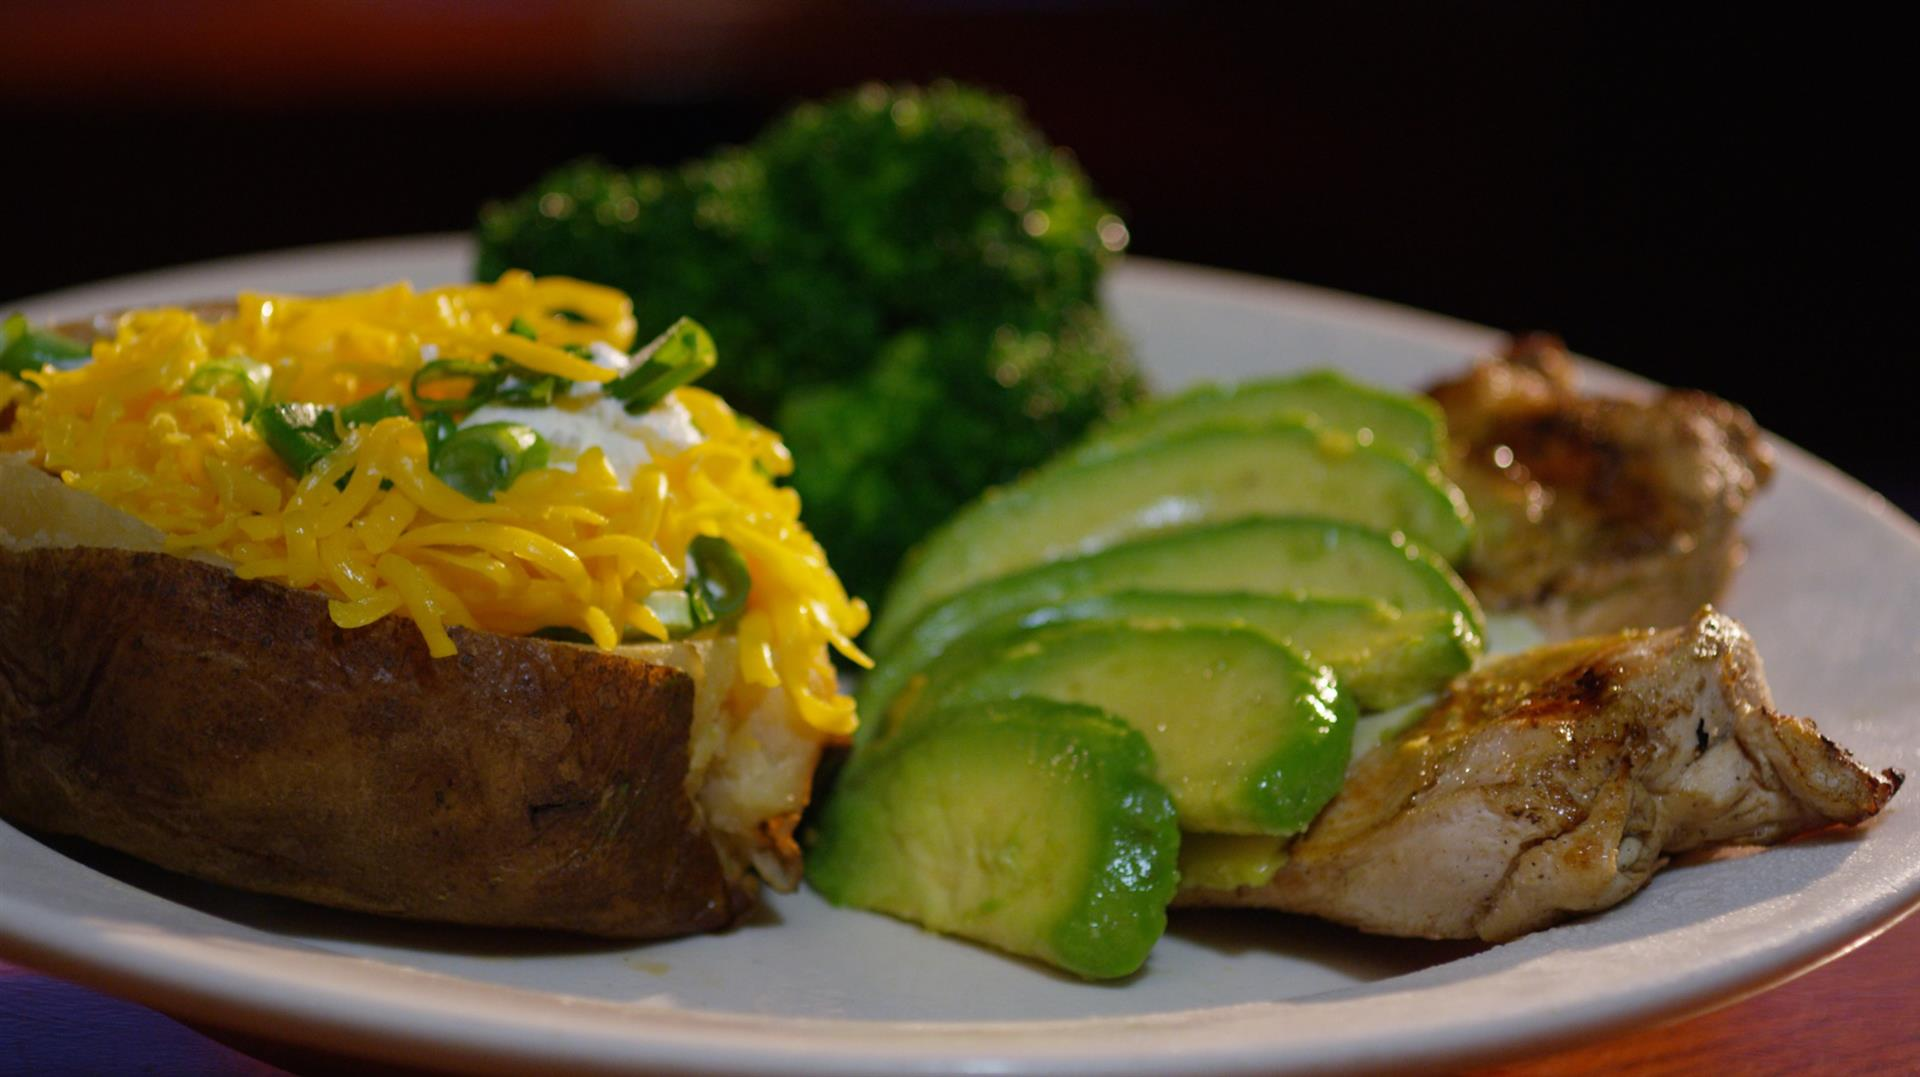 chicken with avocado and a baked potato with a side of broccoli